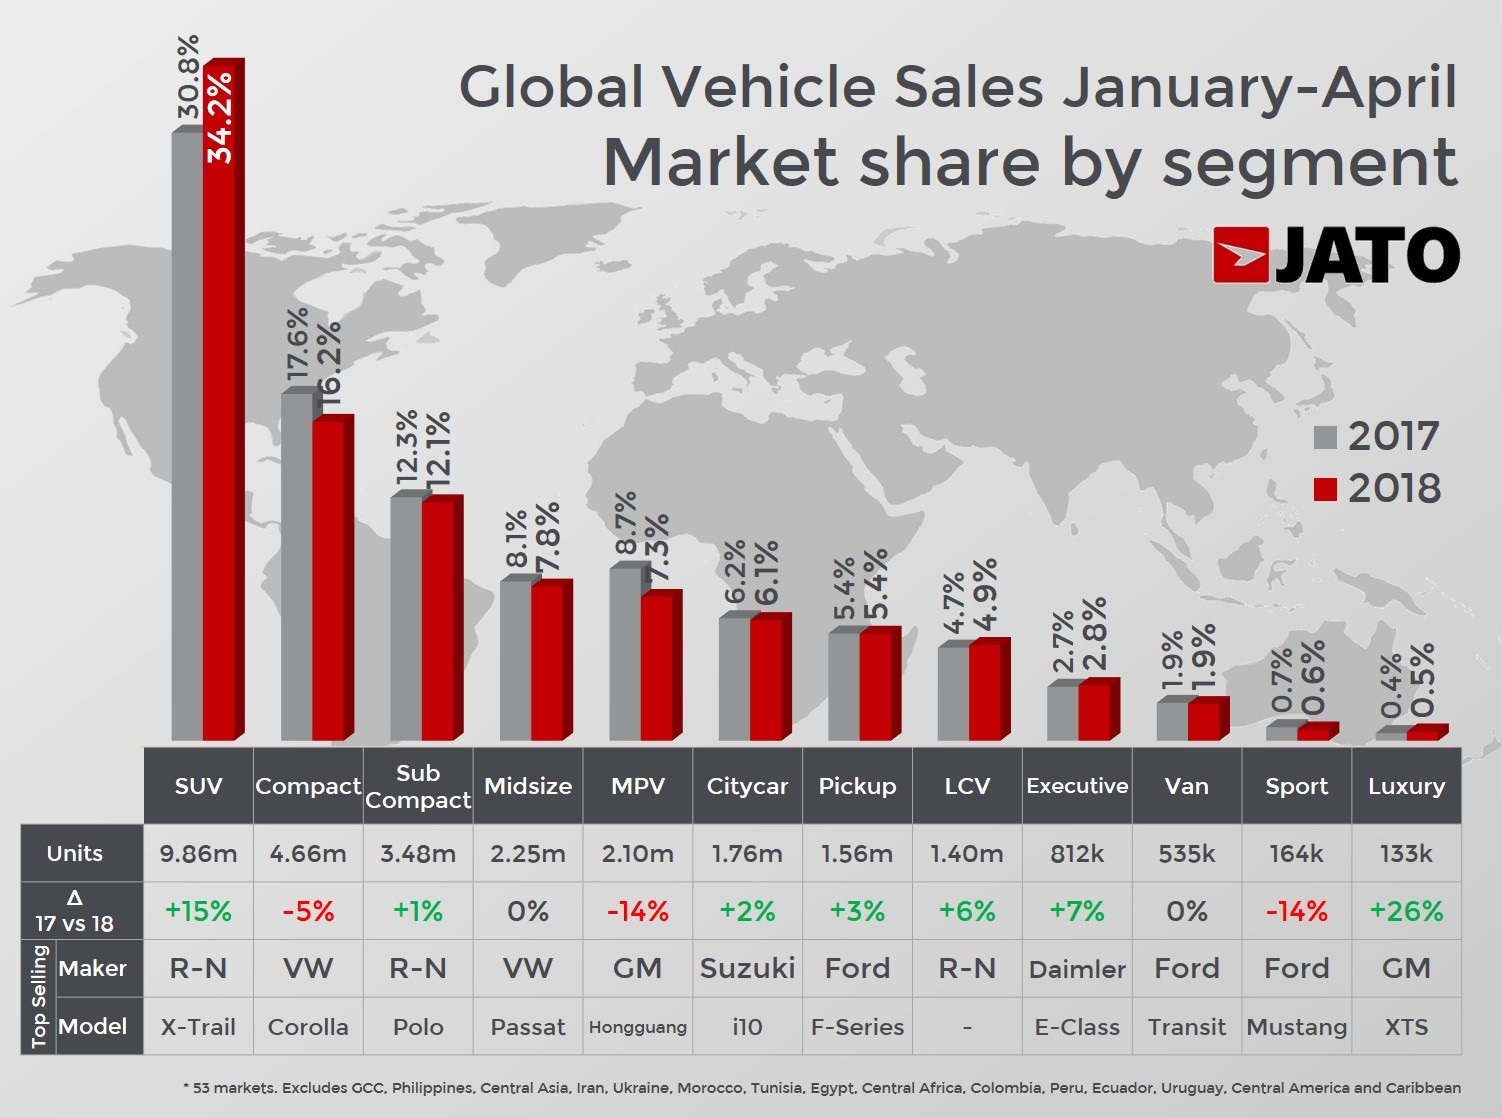 These were the world's top selling cars through April 2018